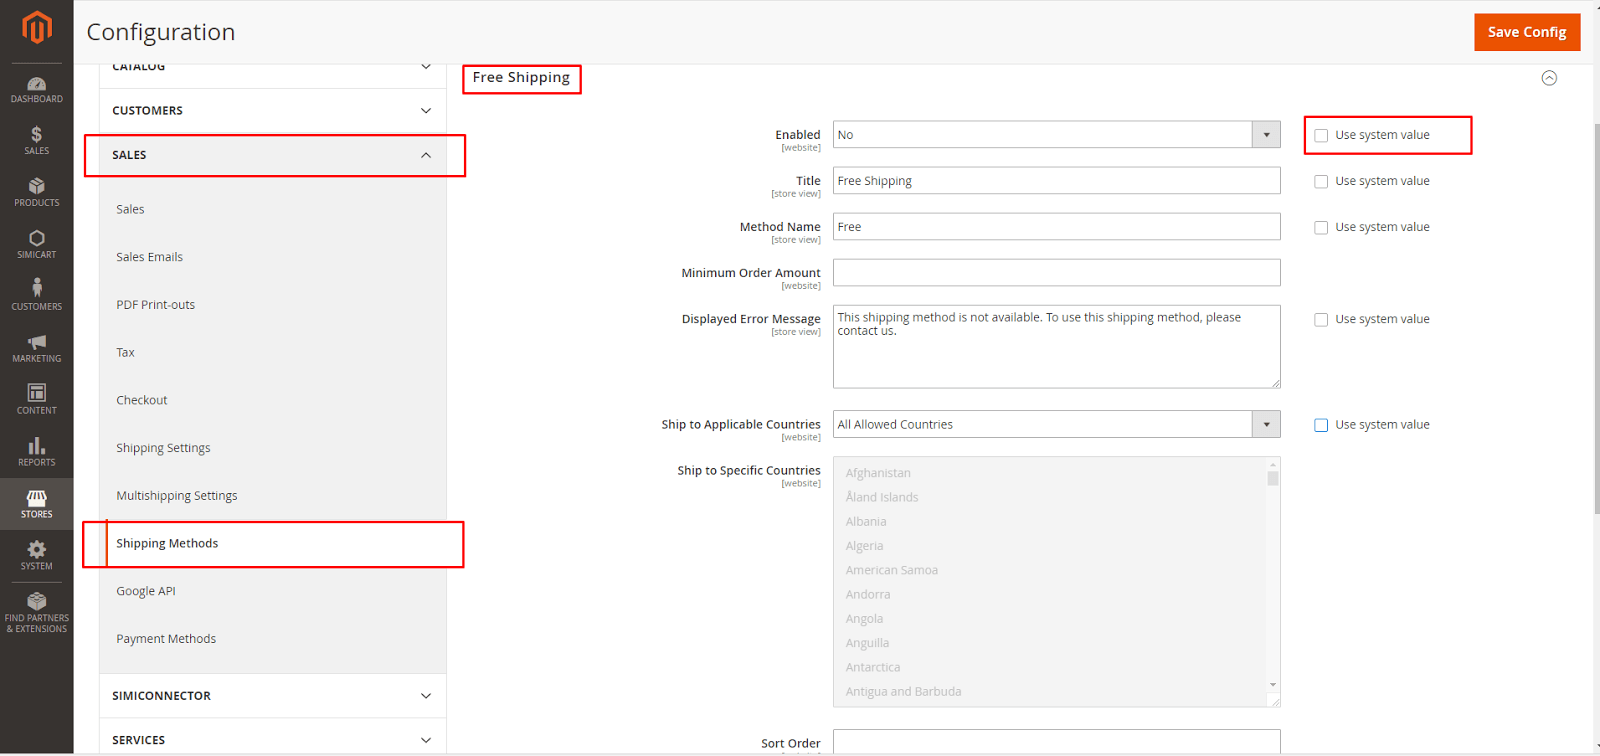 How to Add Shipping Methods in Magento 2 - Magento Tutorials